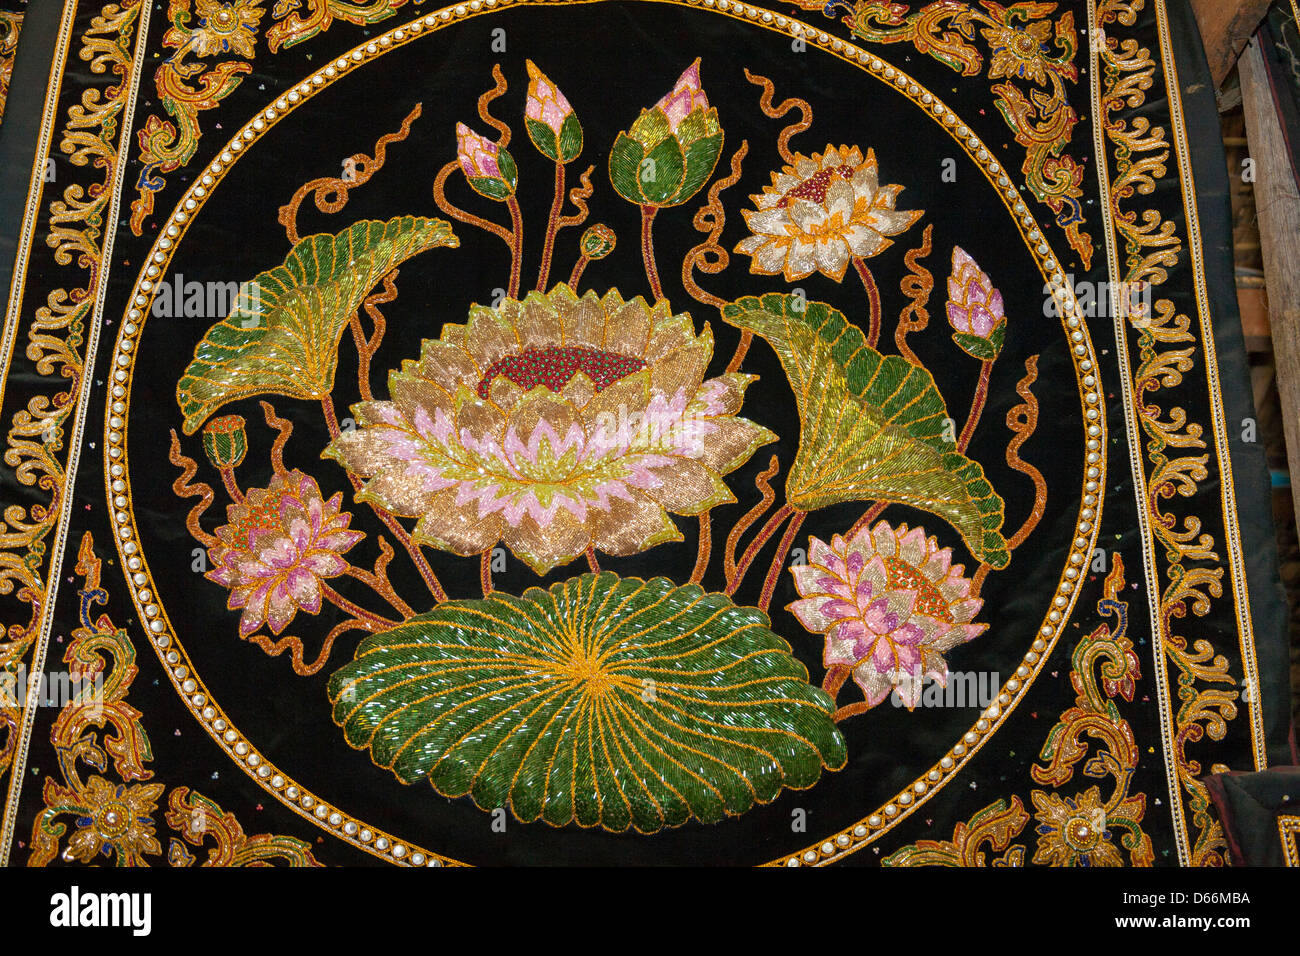 Embroidered Fabric Depicting Lotus Flowers Mandalay Myanmar Stock